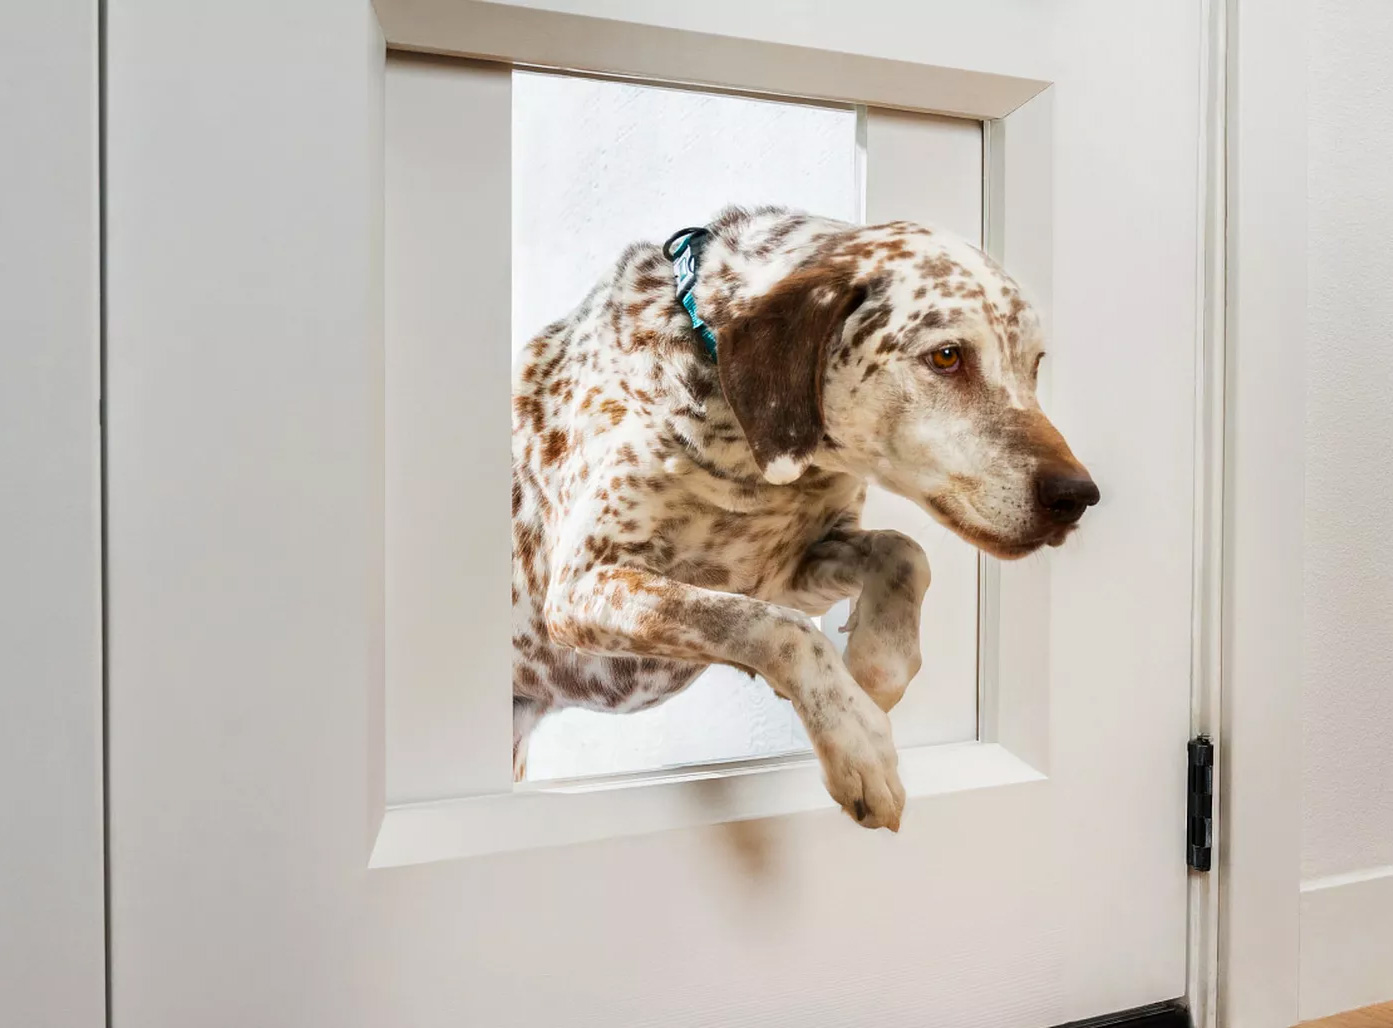 Empower Your Pets with the Ultimate Doggy Door at werd.com